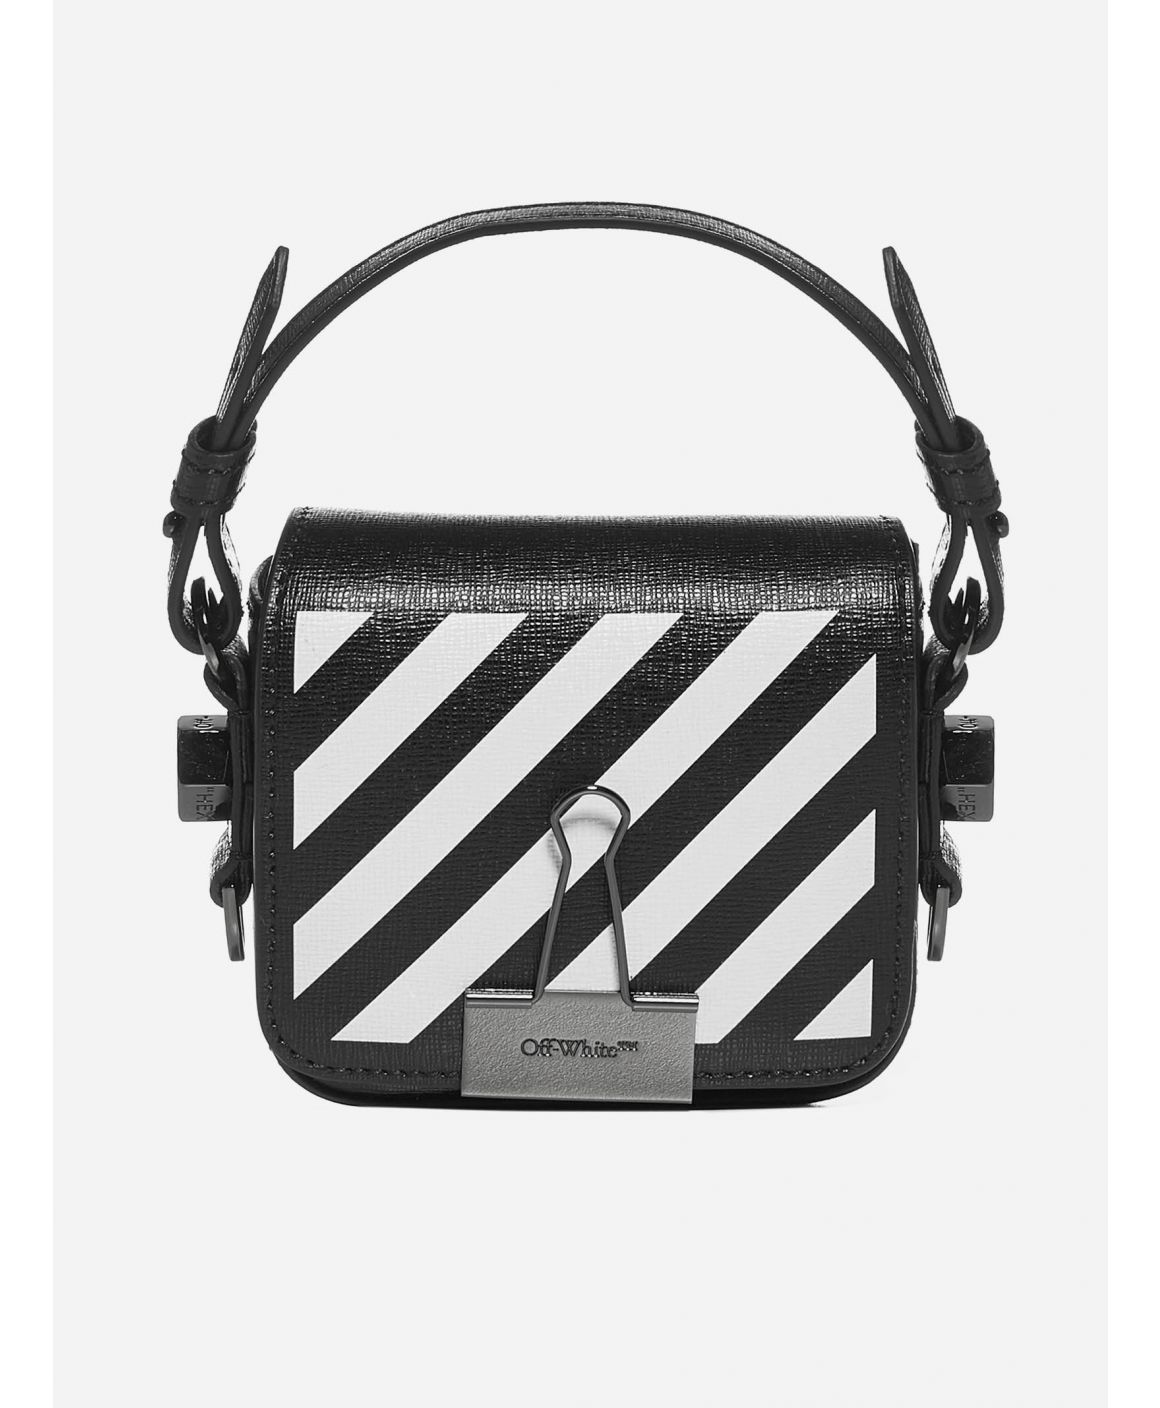 Diag Baby Flap leather bag